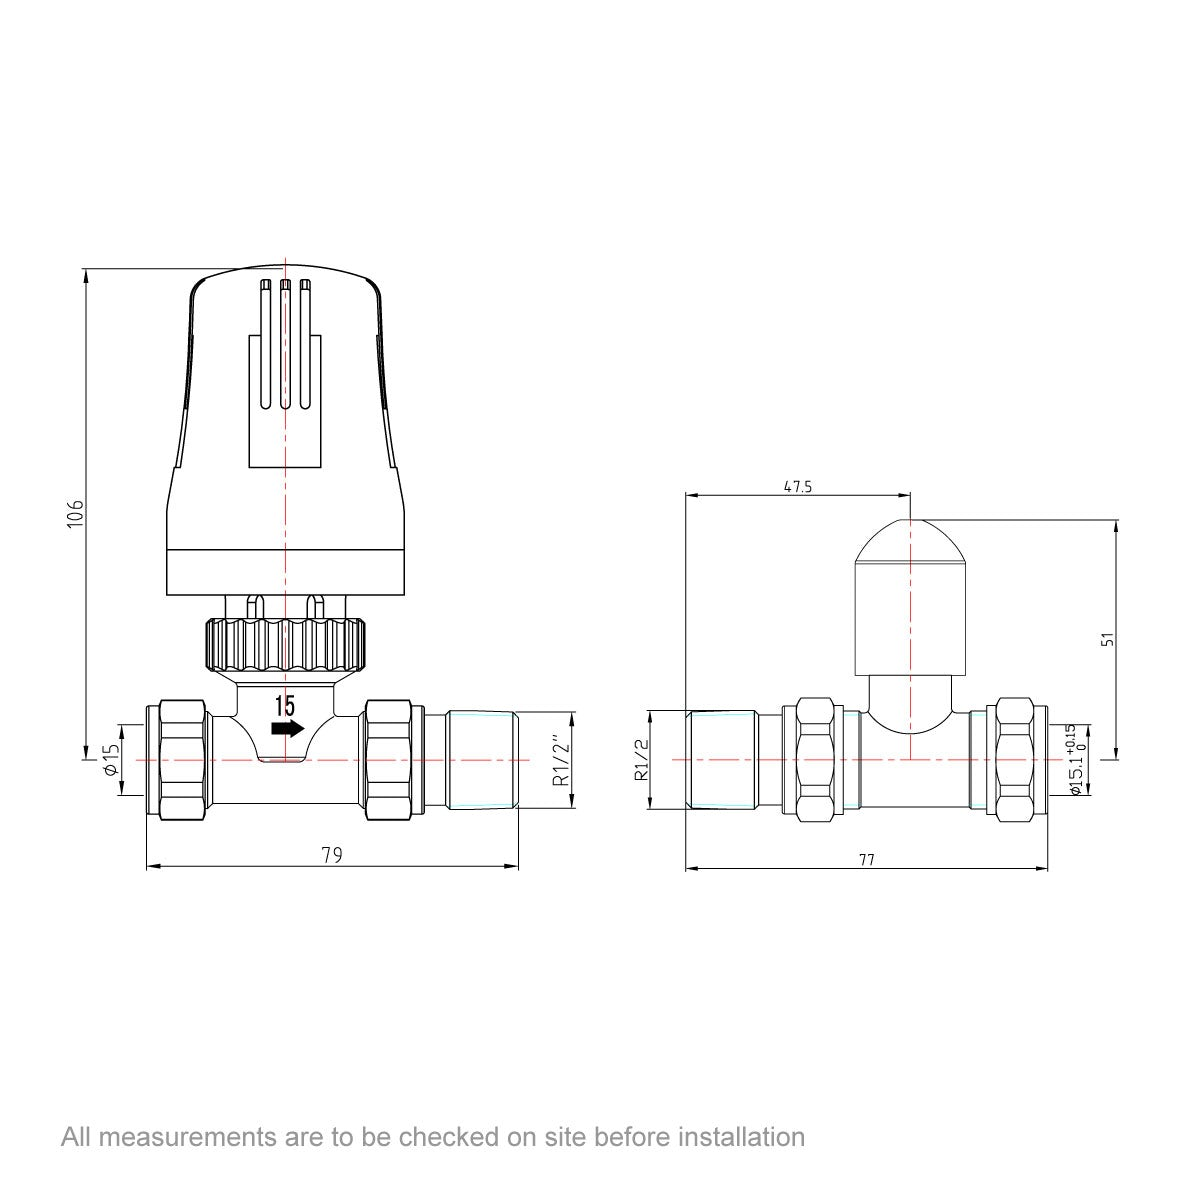 Dimensions for Orchard Thermostatic white straight radiator valves